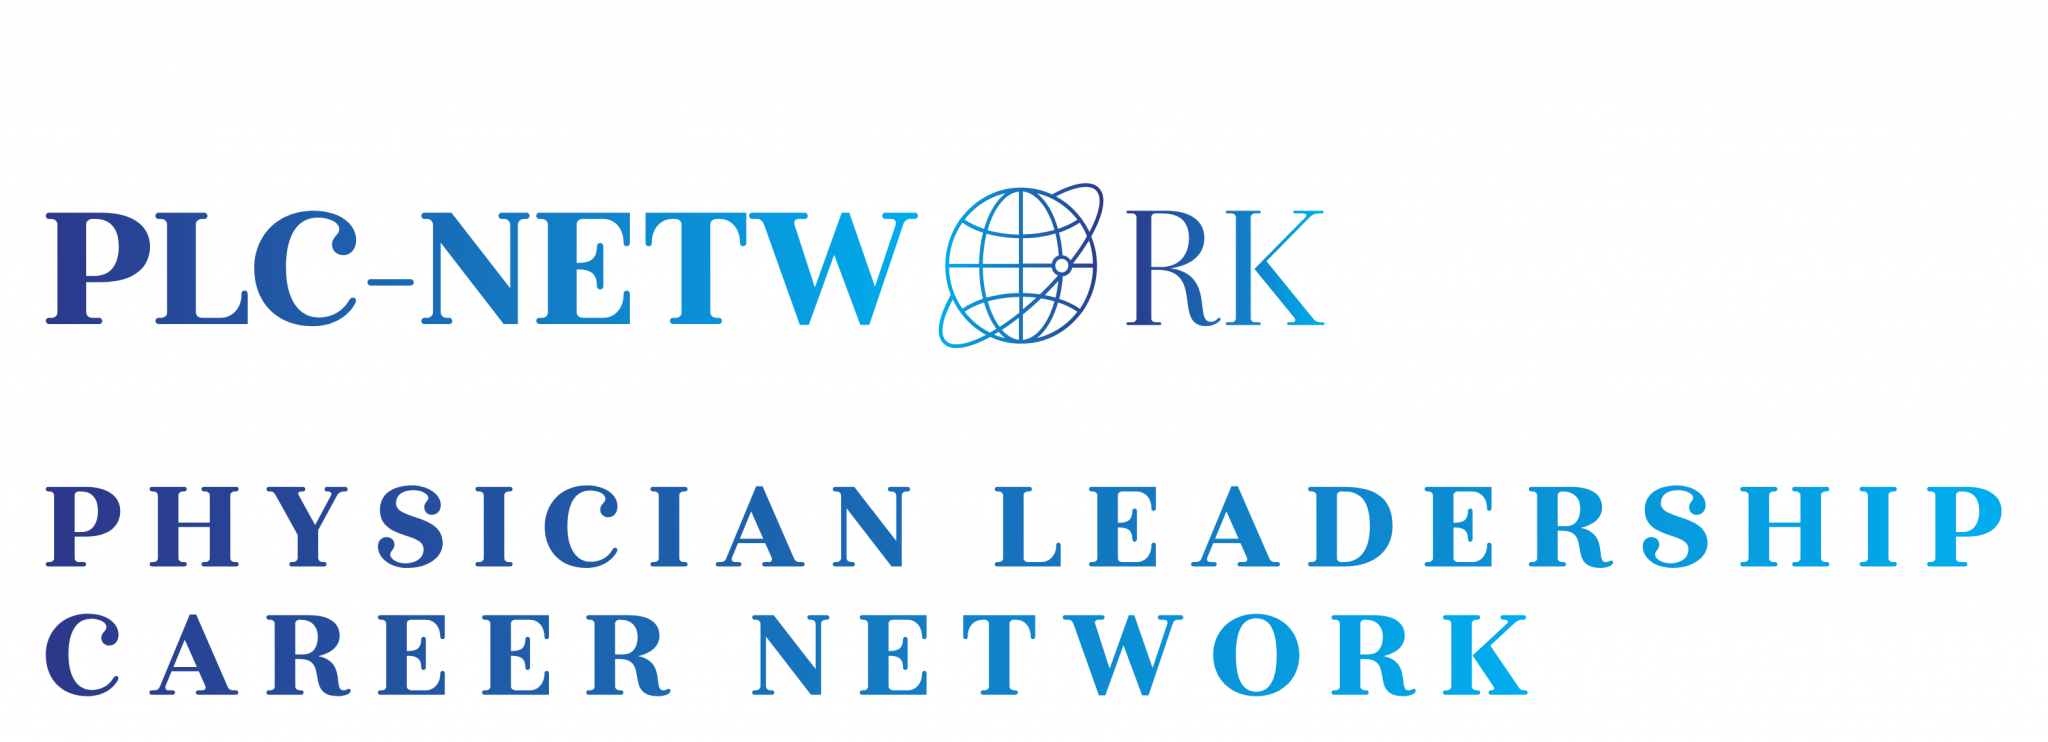 Physician Leadership Career Network